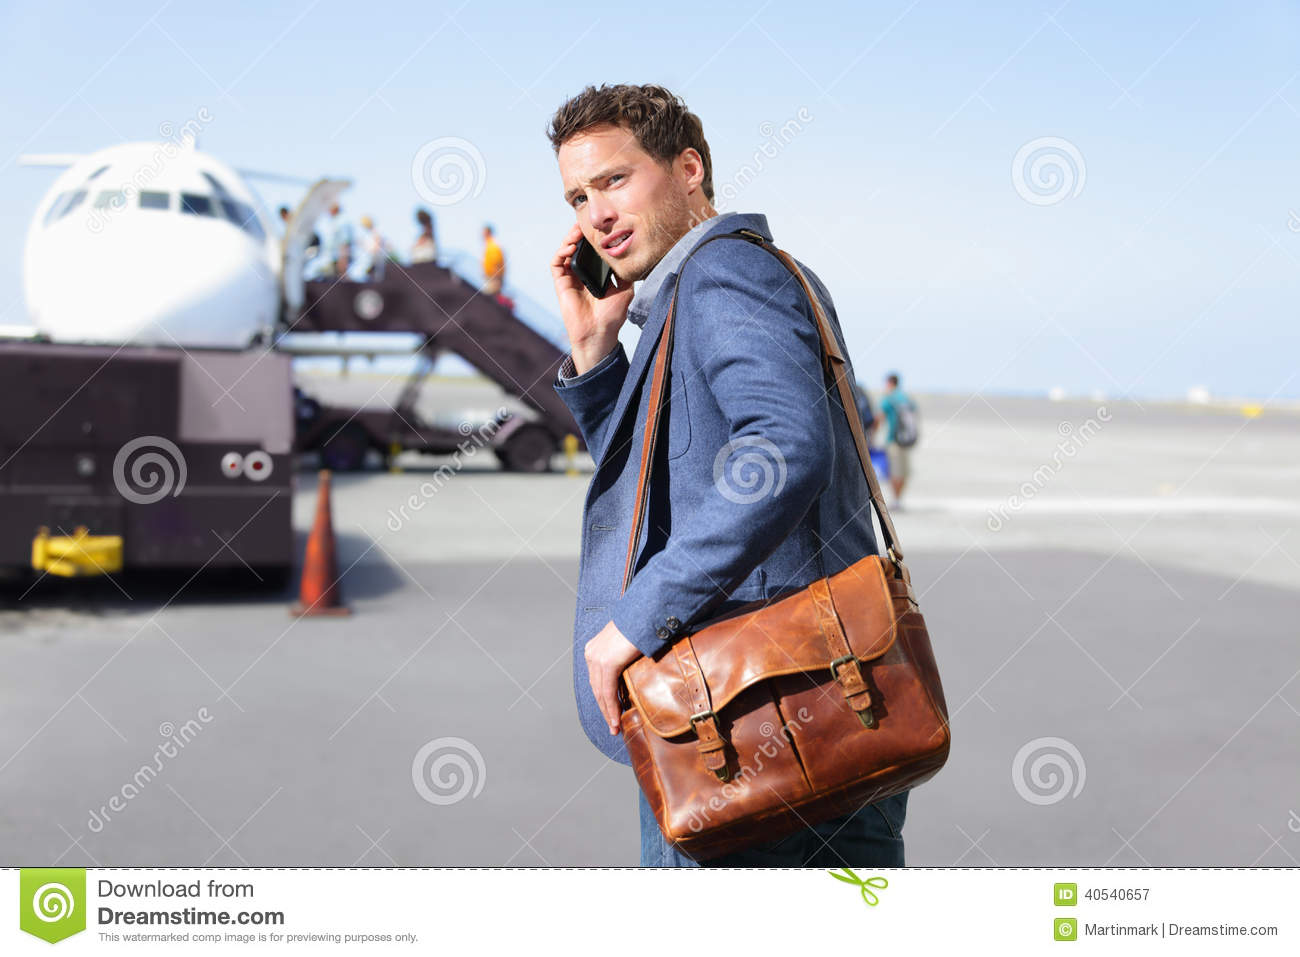 airport-business-man-smartphone-plane-young-male-professional-hip-businessman-talking-boarding-airplane-going-40540657.jpg